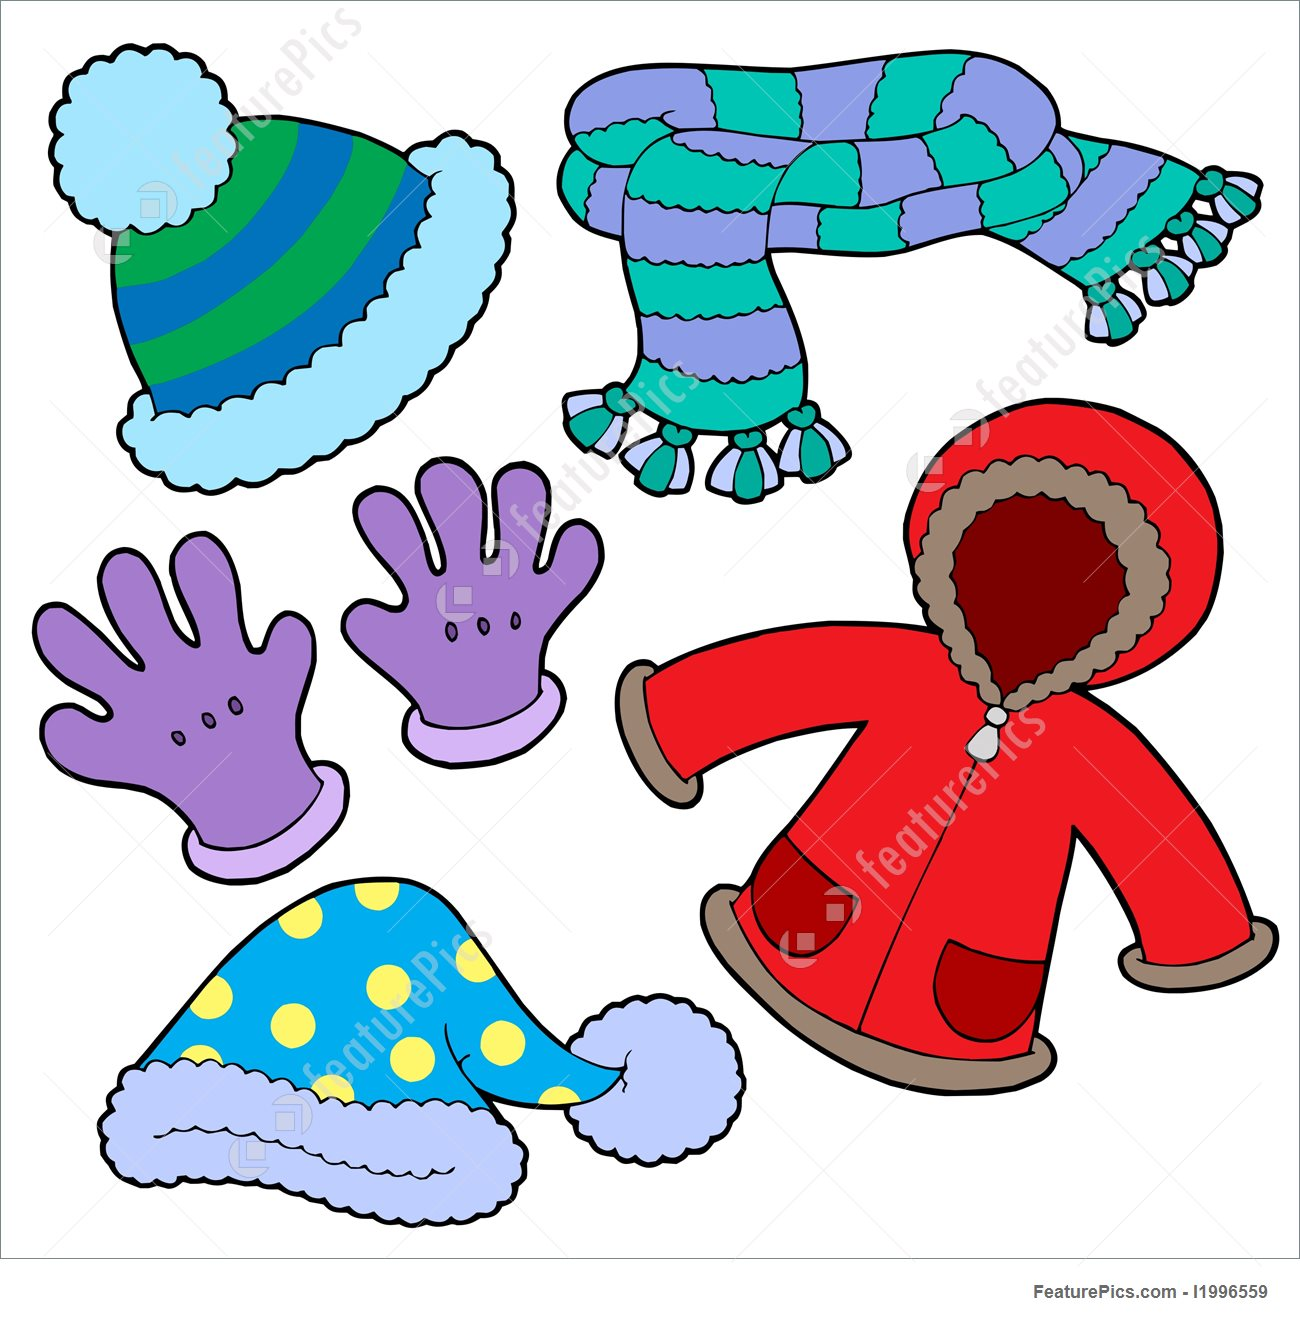 Clothes We Wear In Winter Season Clipart.